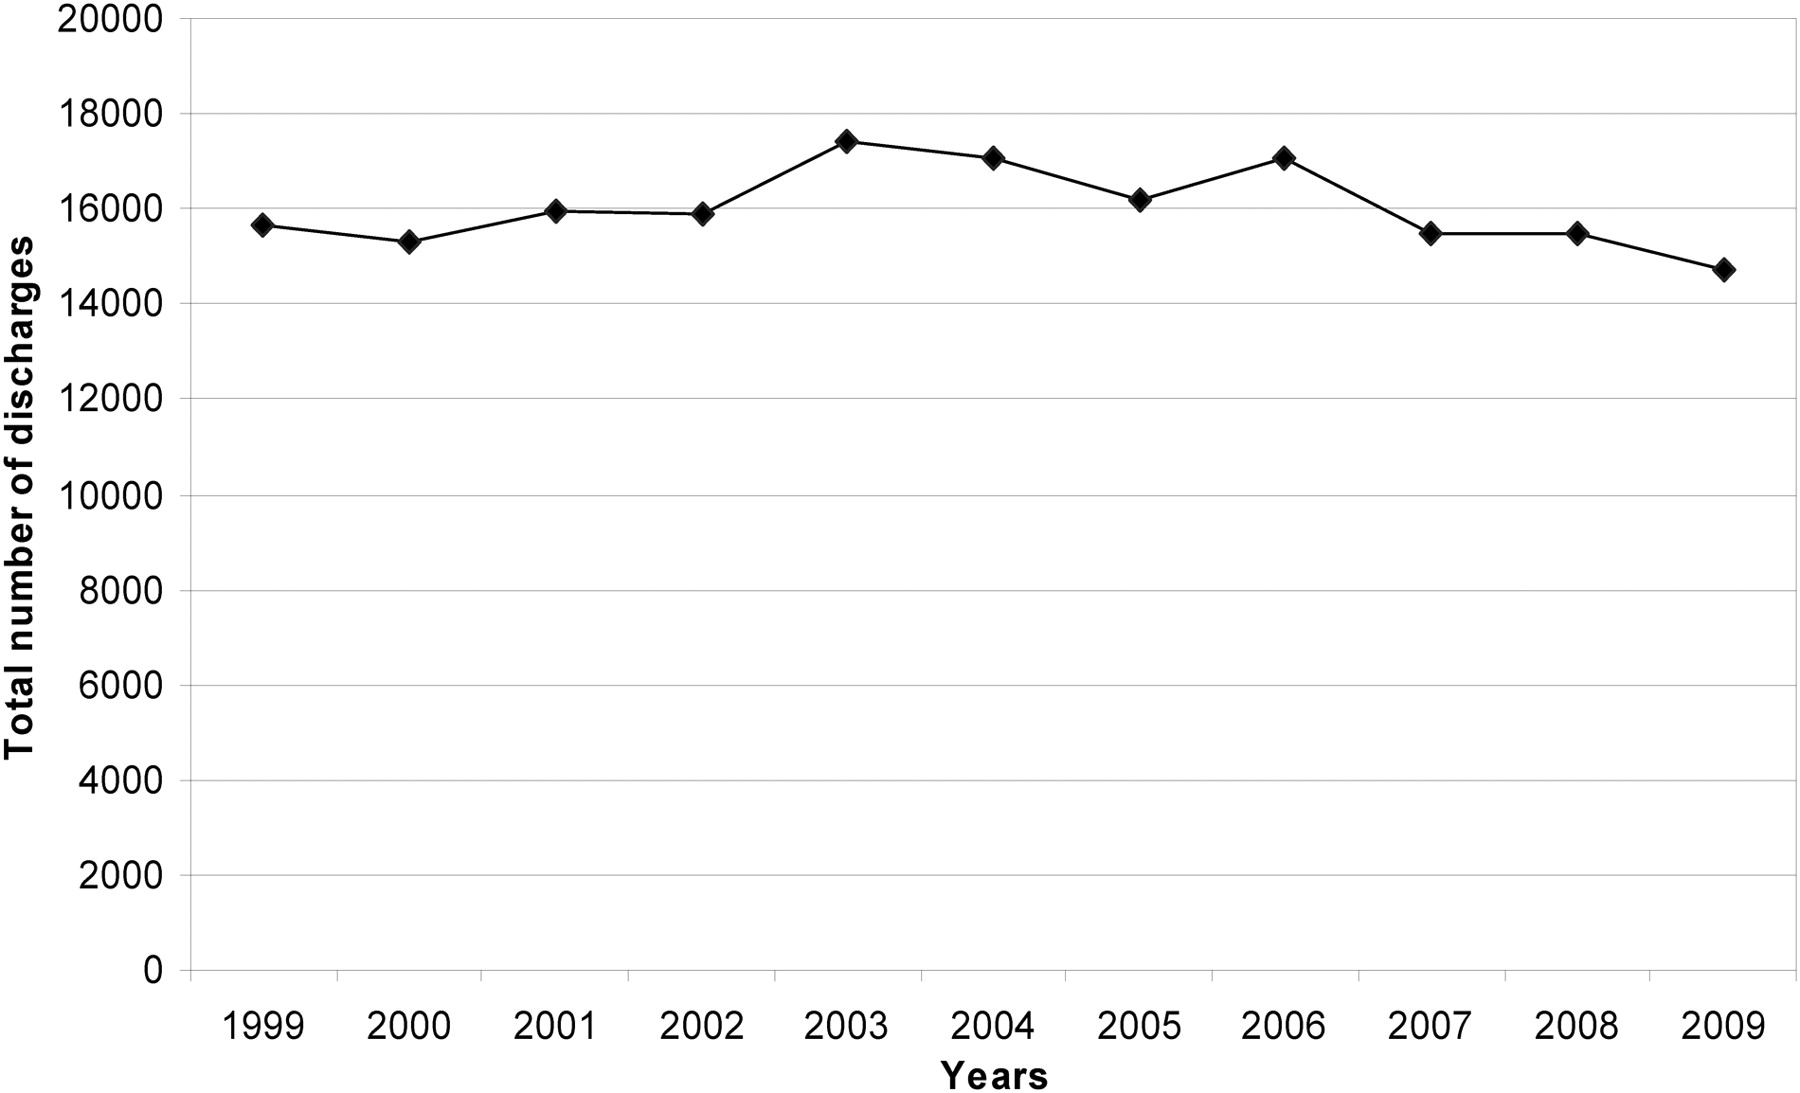 Incidence of Infective Endocarditis Caused by Viridans